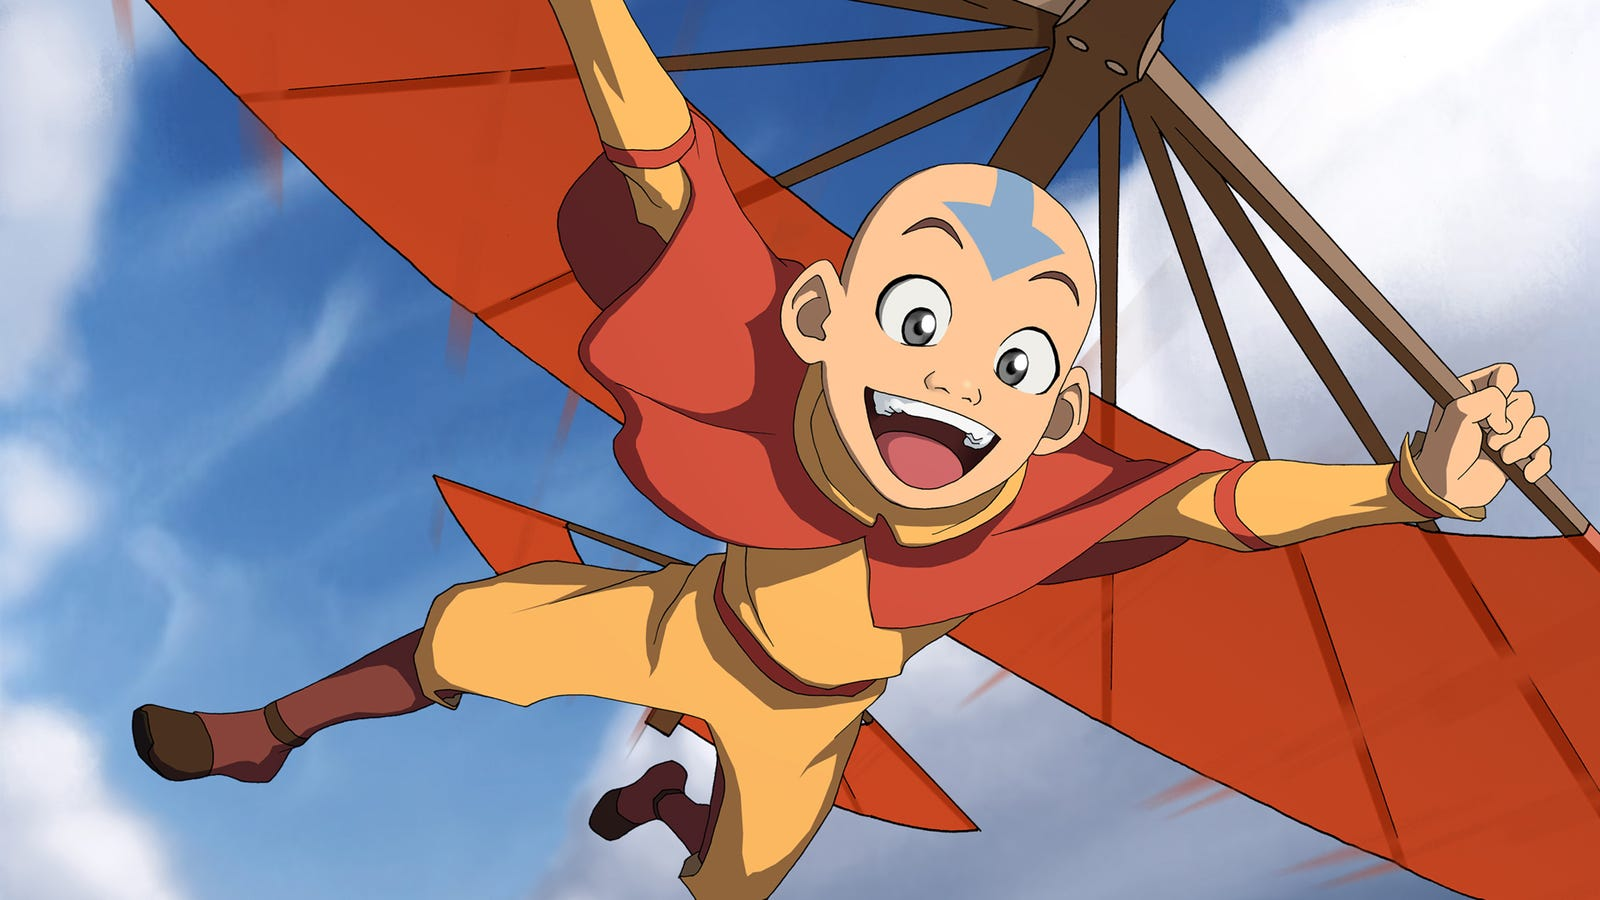 Avatar the last airbender is one of the greatest tv shows of all time